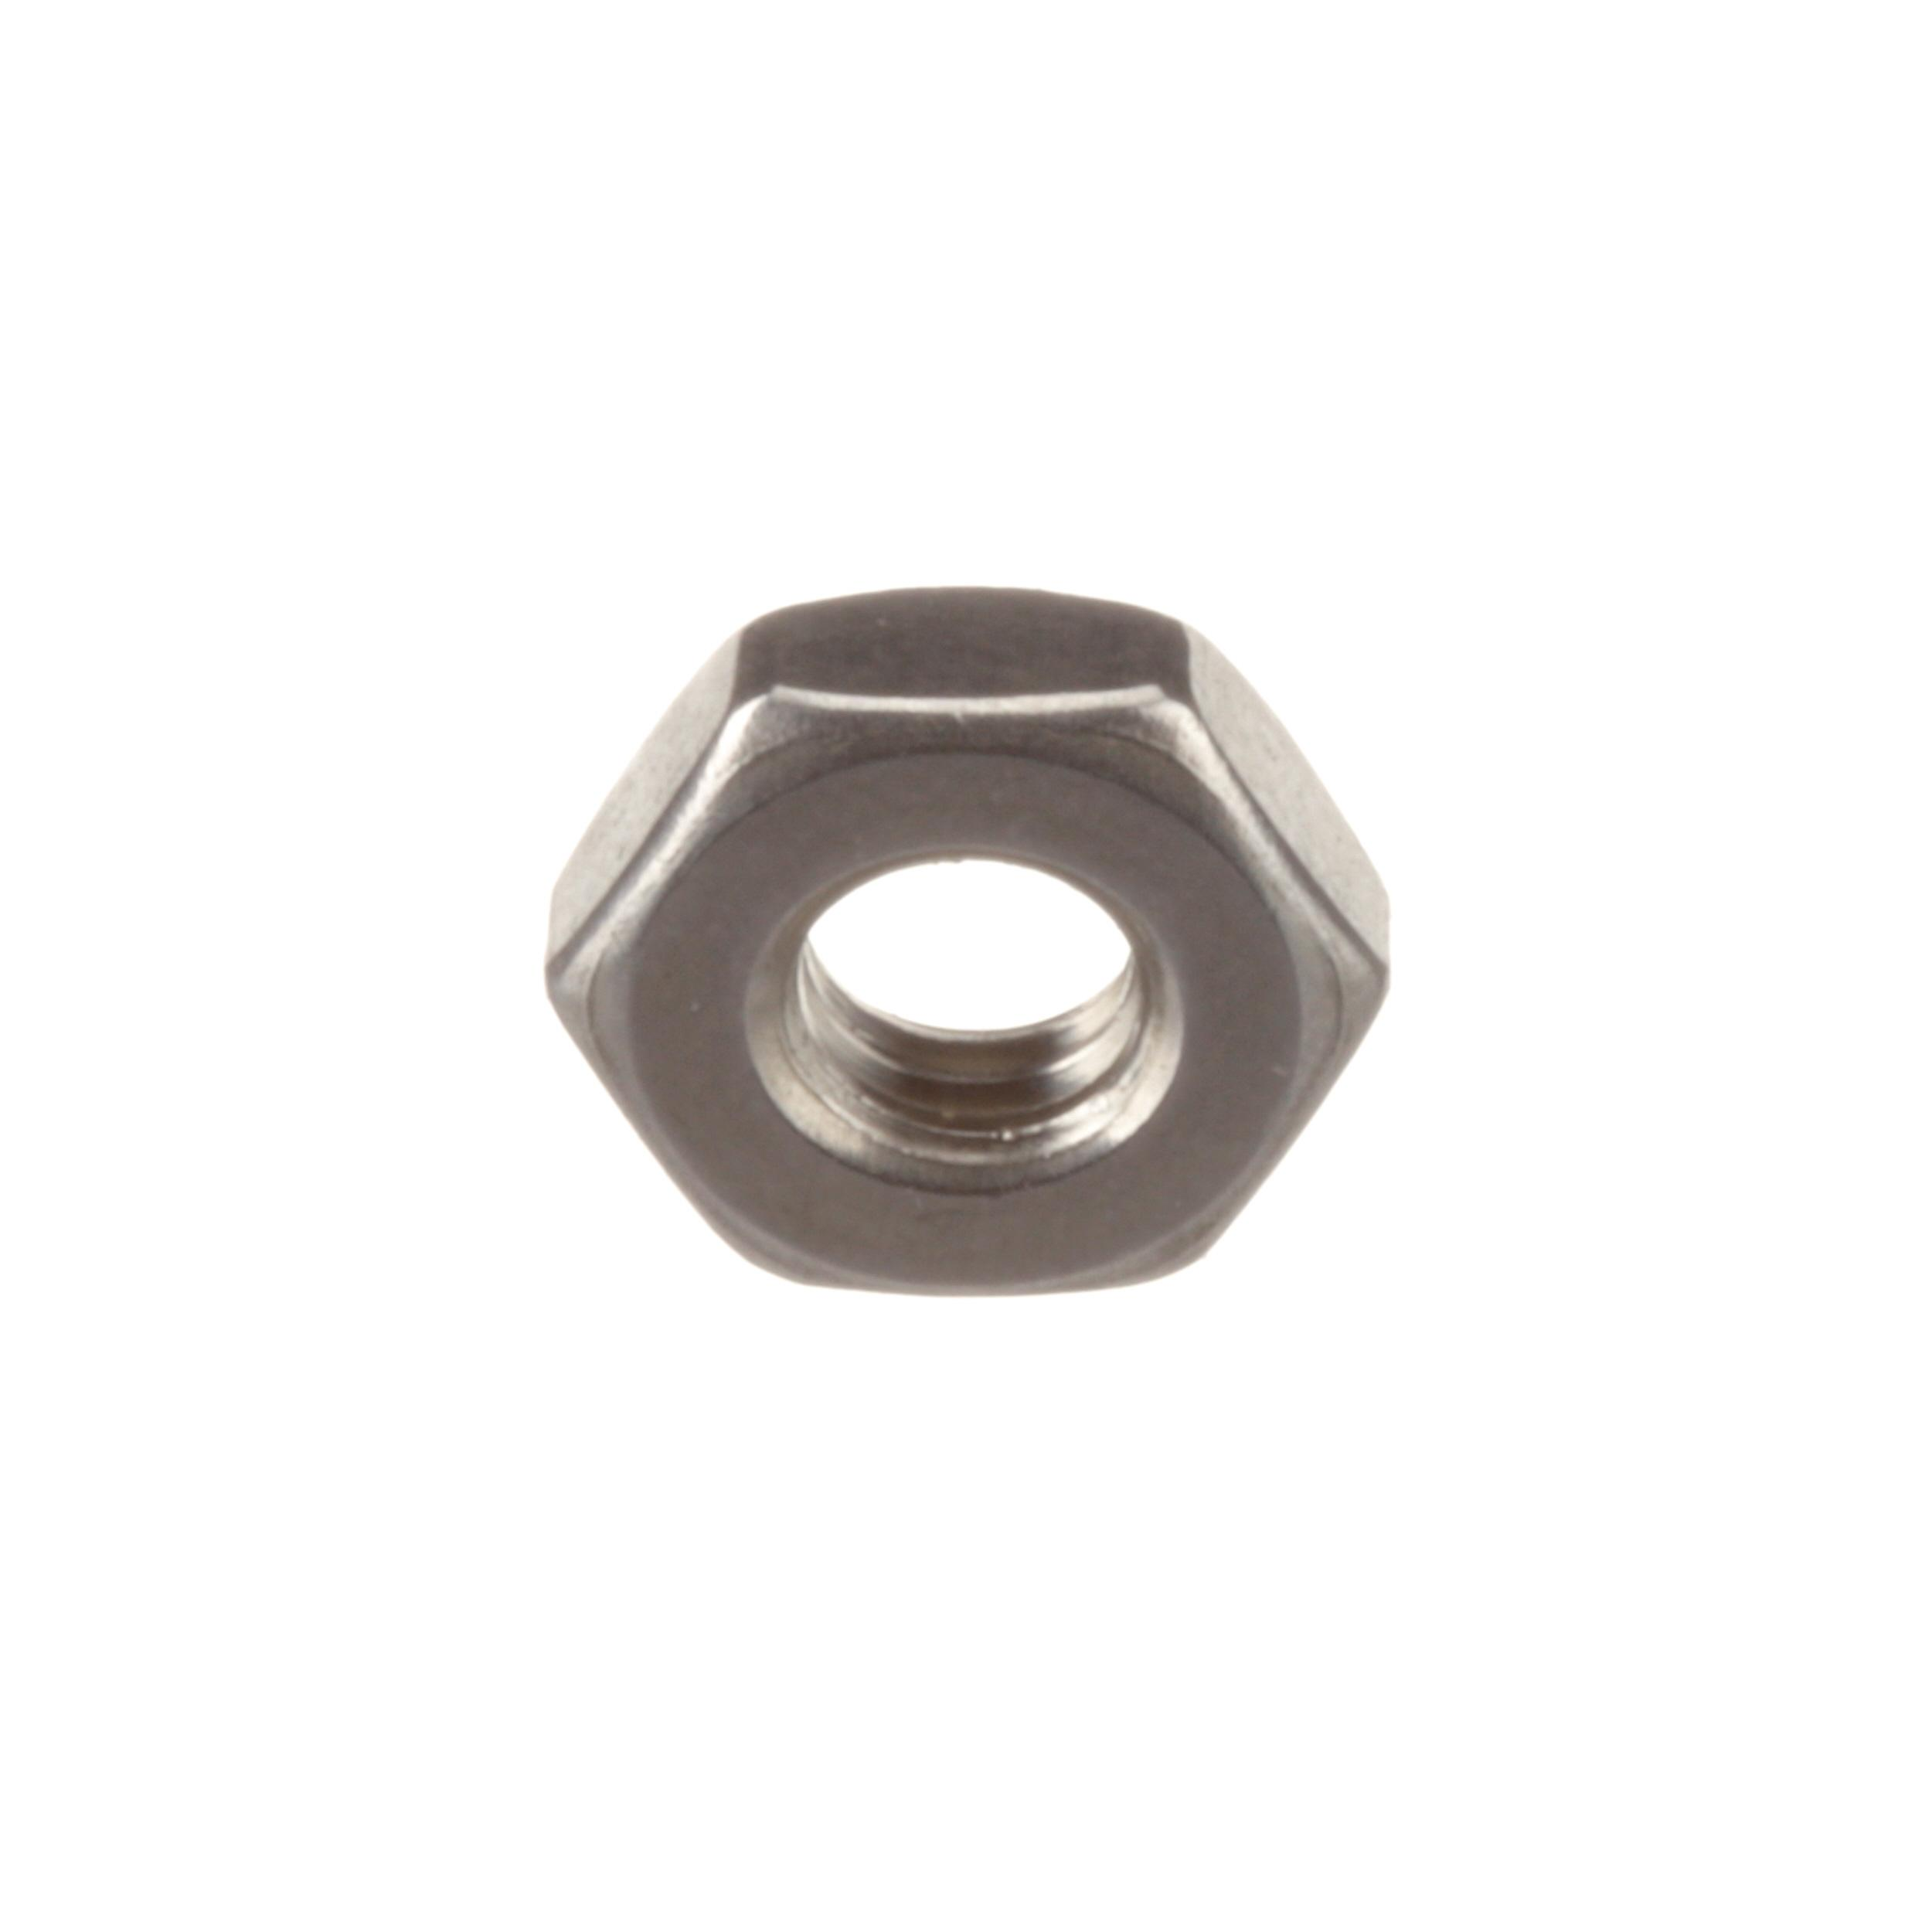 ALTO-SHAAM NUT,10-32,NF HEX MS,#18-8 S/S